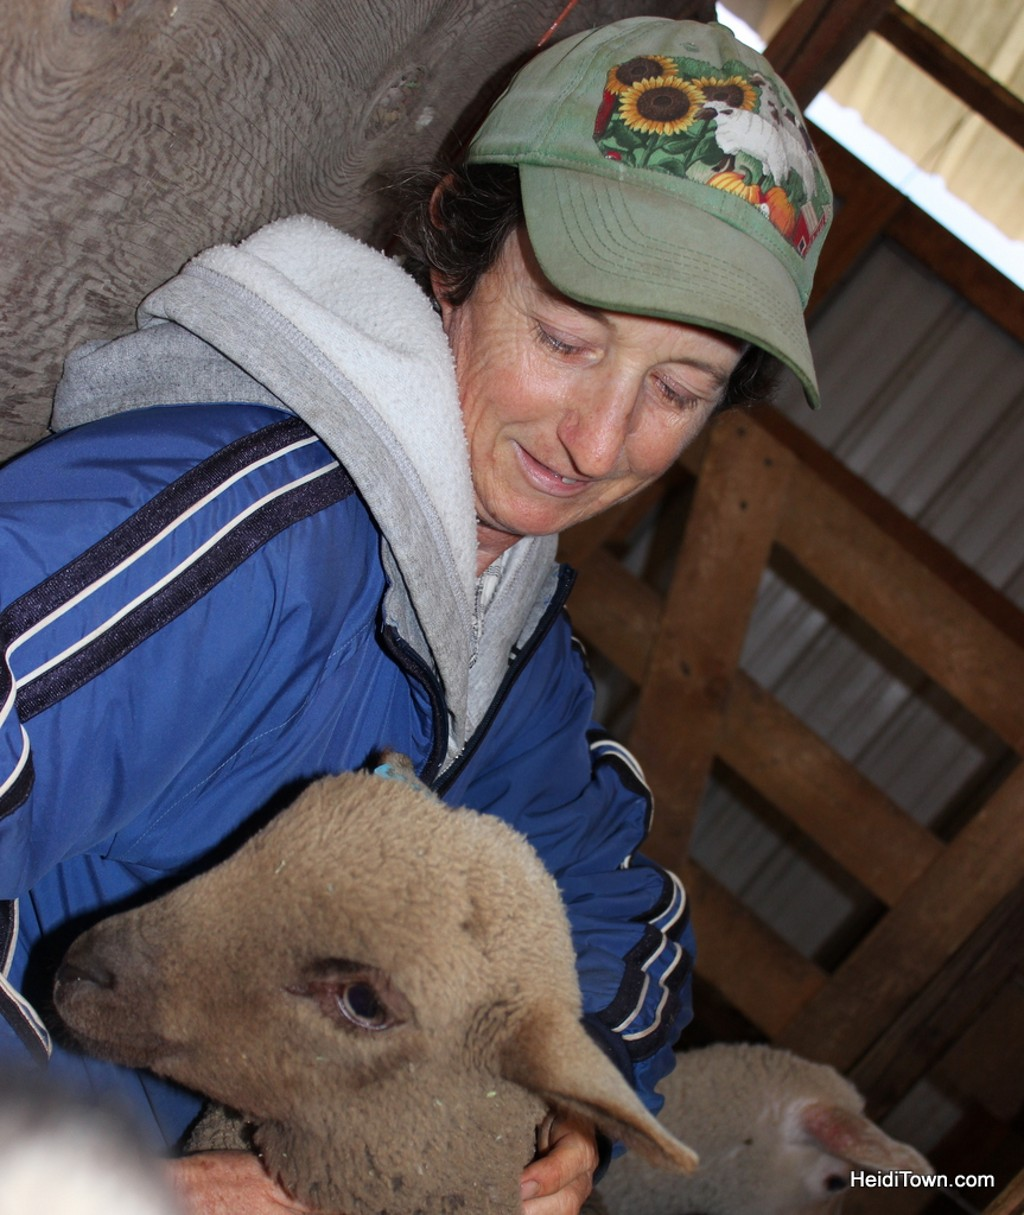 Lynn with one of her lambs during Lamb Lovin' at The Living Farm in Paonia, Colorado. HeidiTown.com